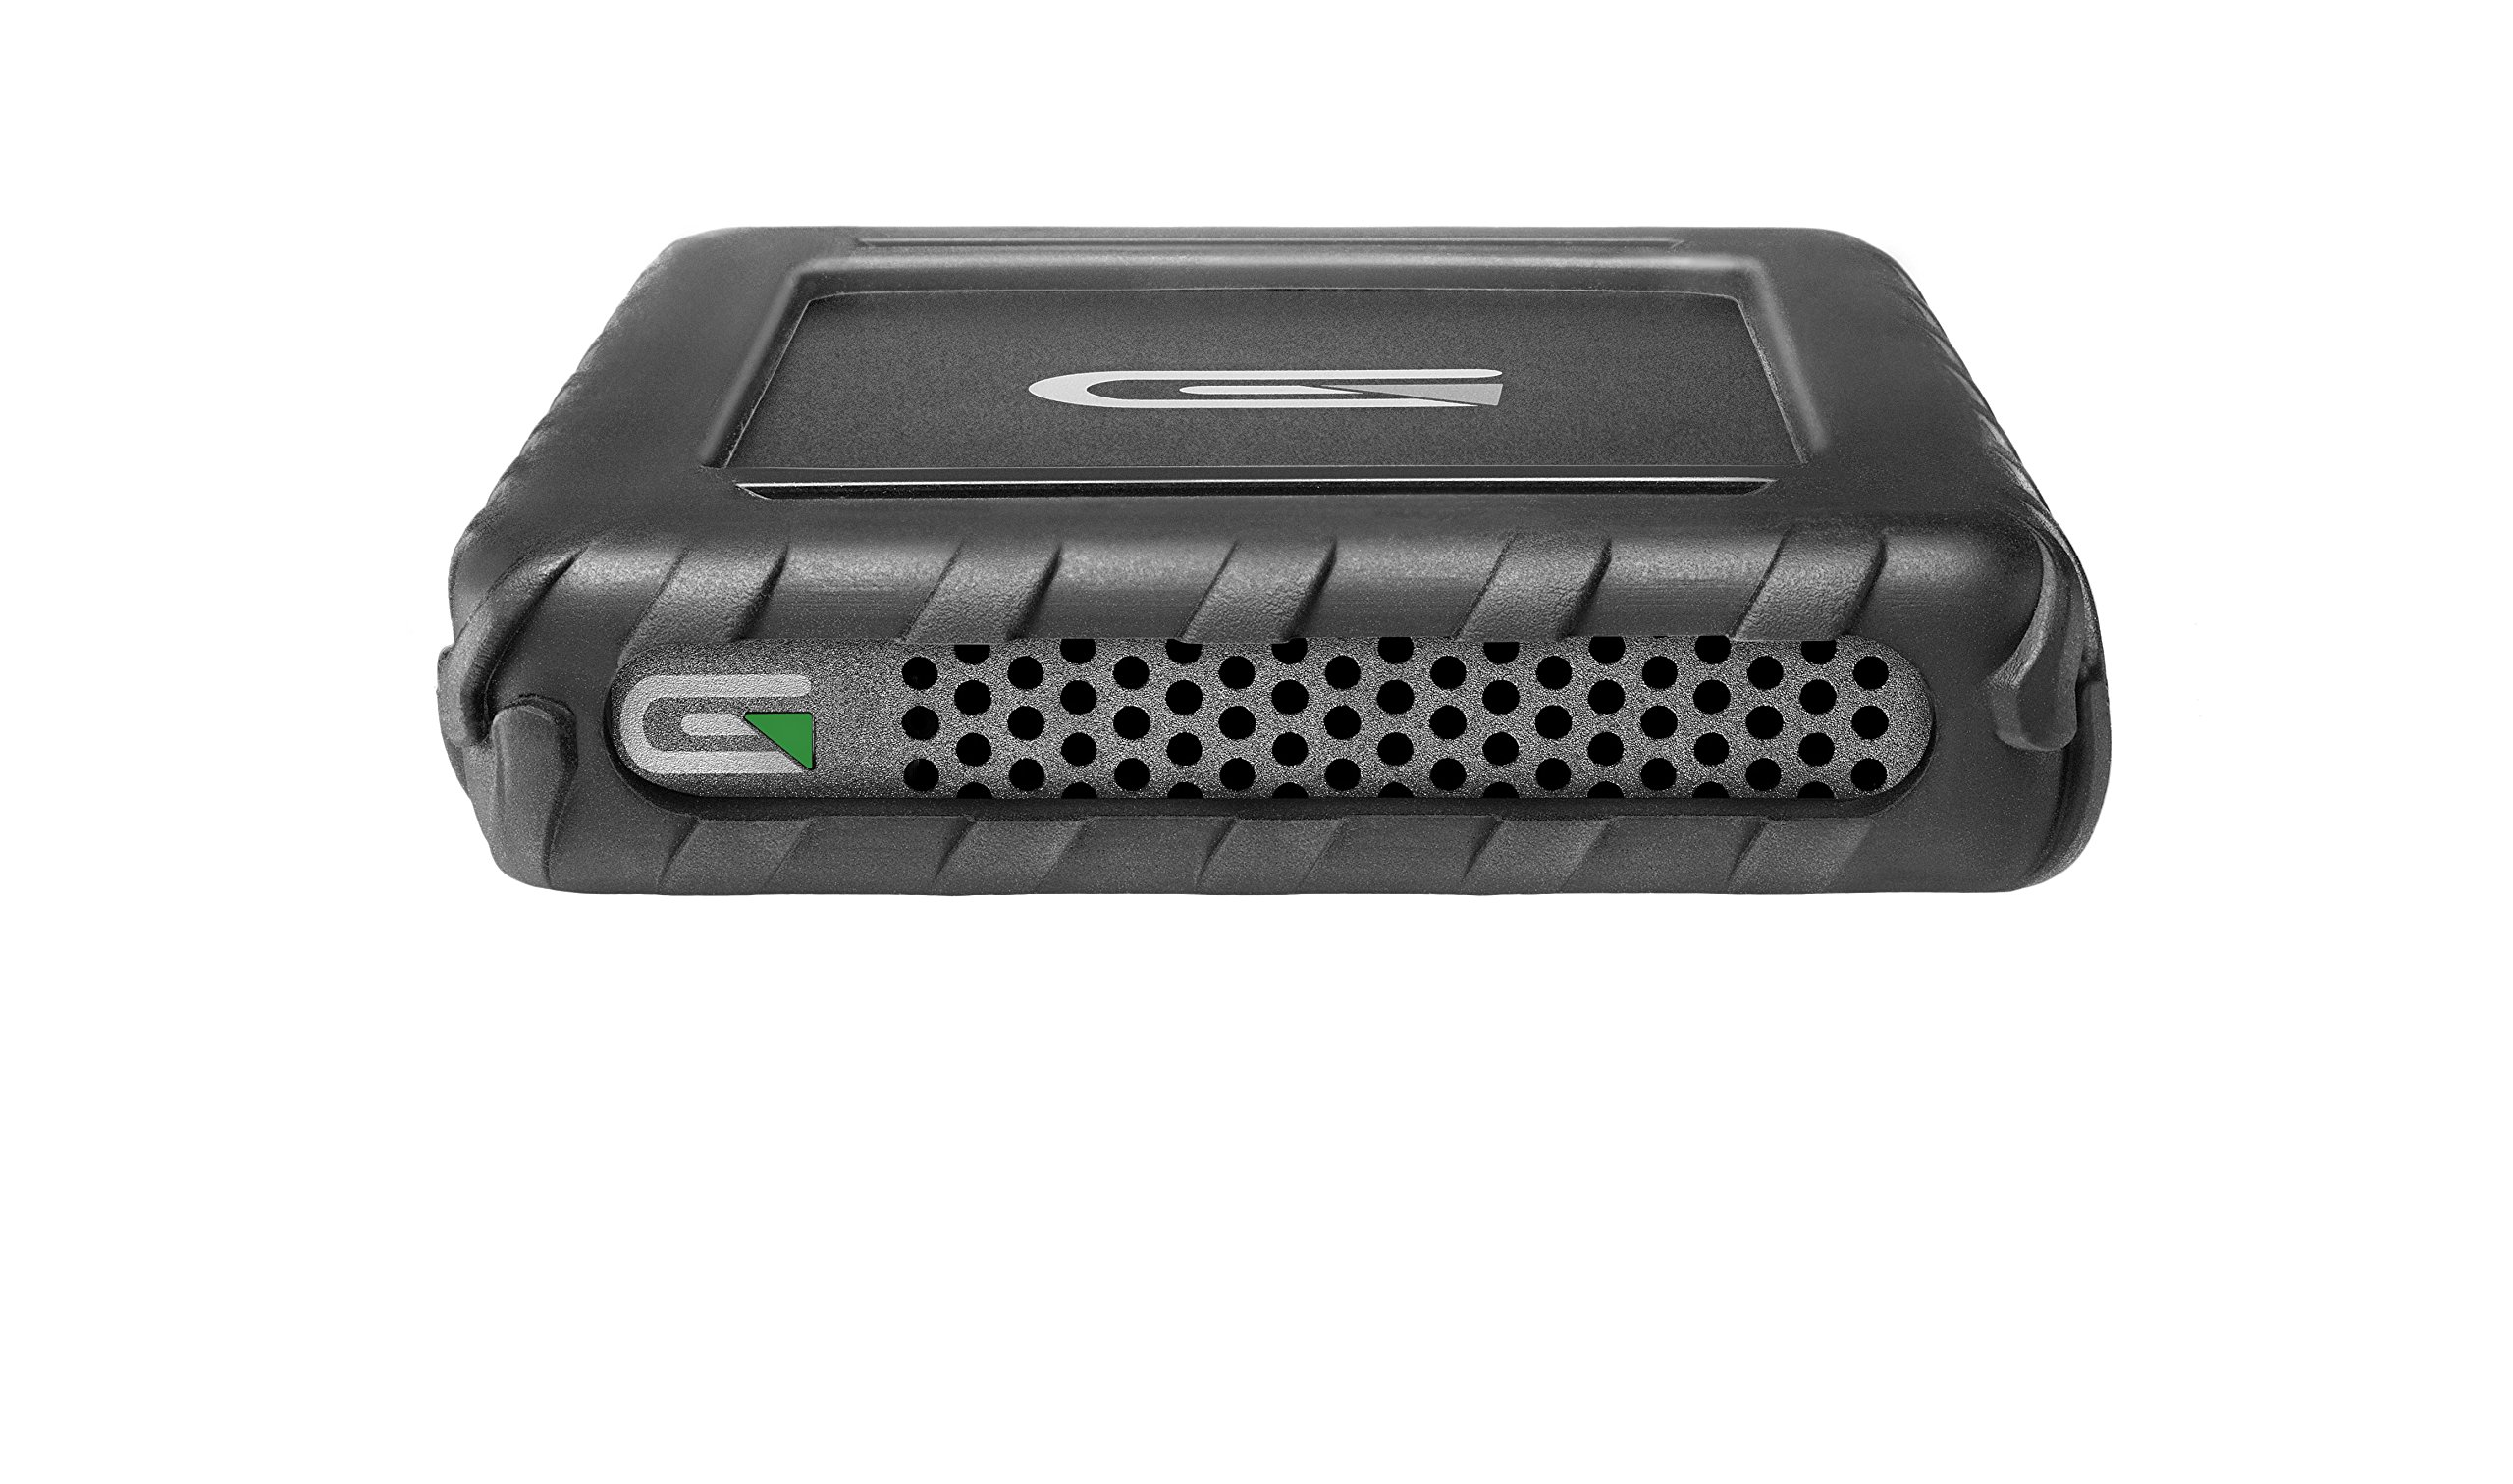 BlackBox Plus SSD 3.8TB (USB-C, Thunderbolt 3) BBPLSSD3800